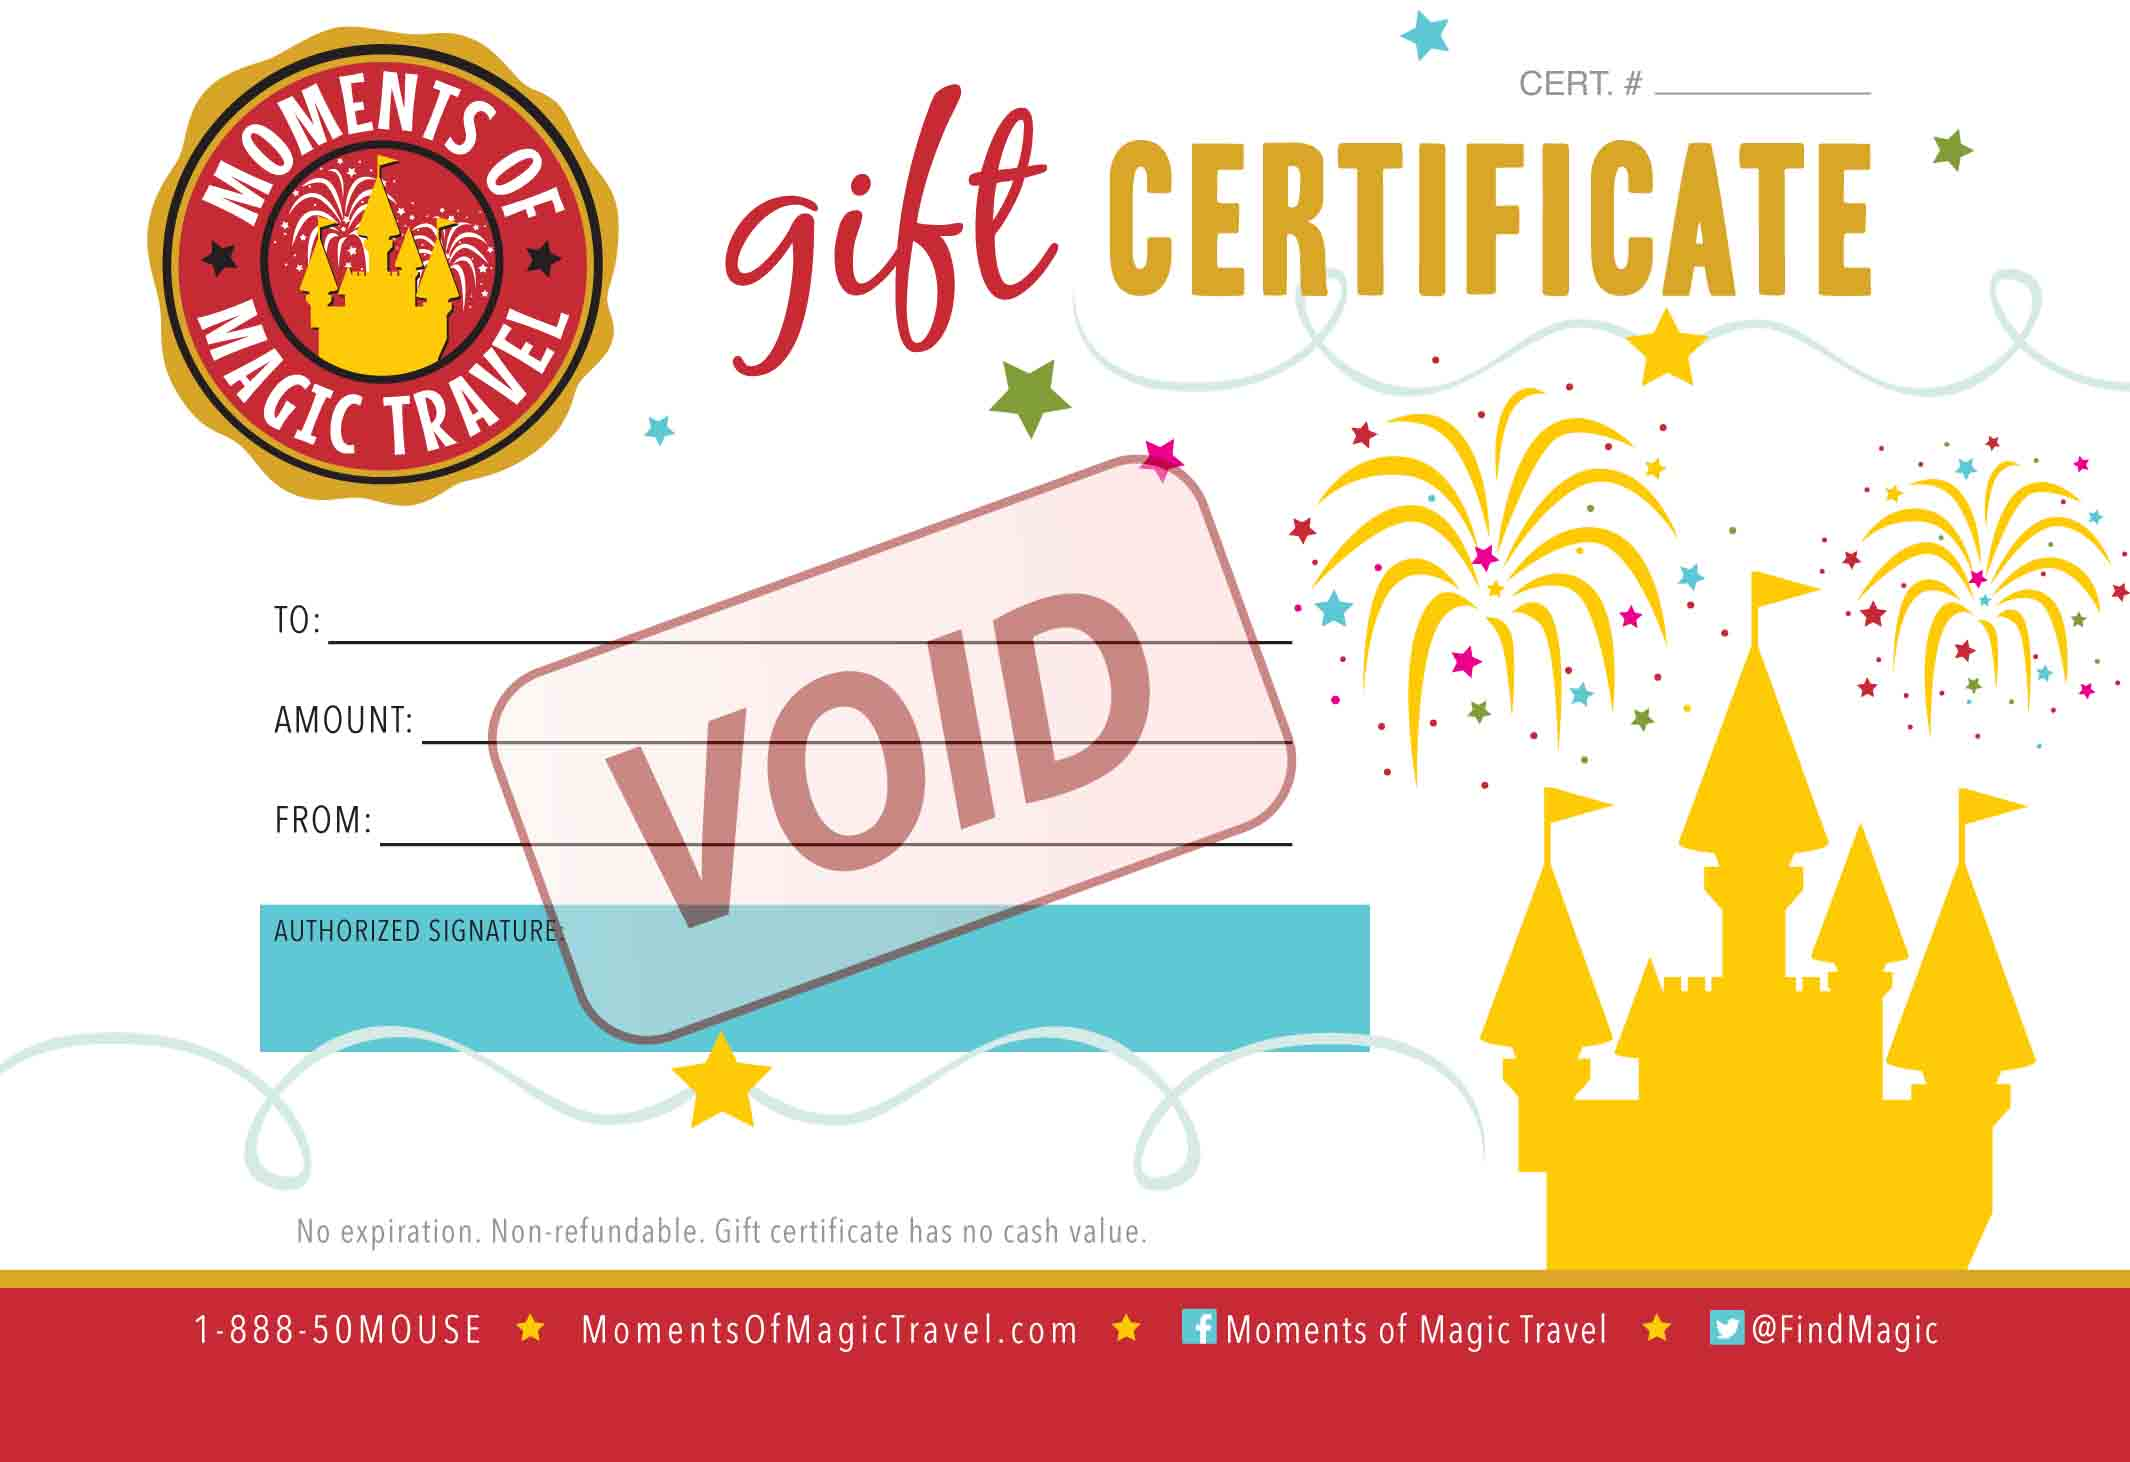 Free gift certificate offer cyber monday deal moments of magic giftcertificatesample xflitez Gallery